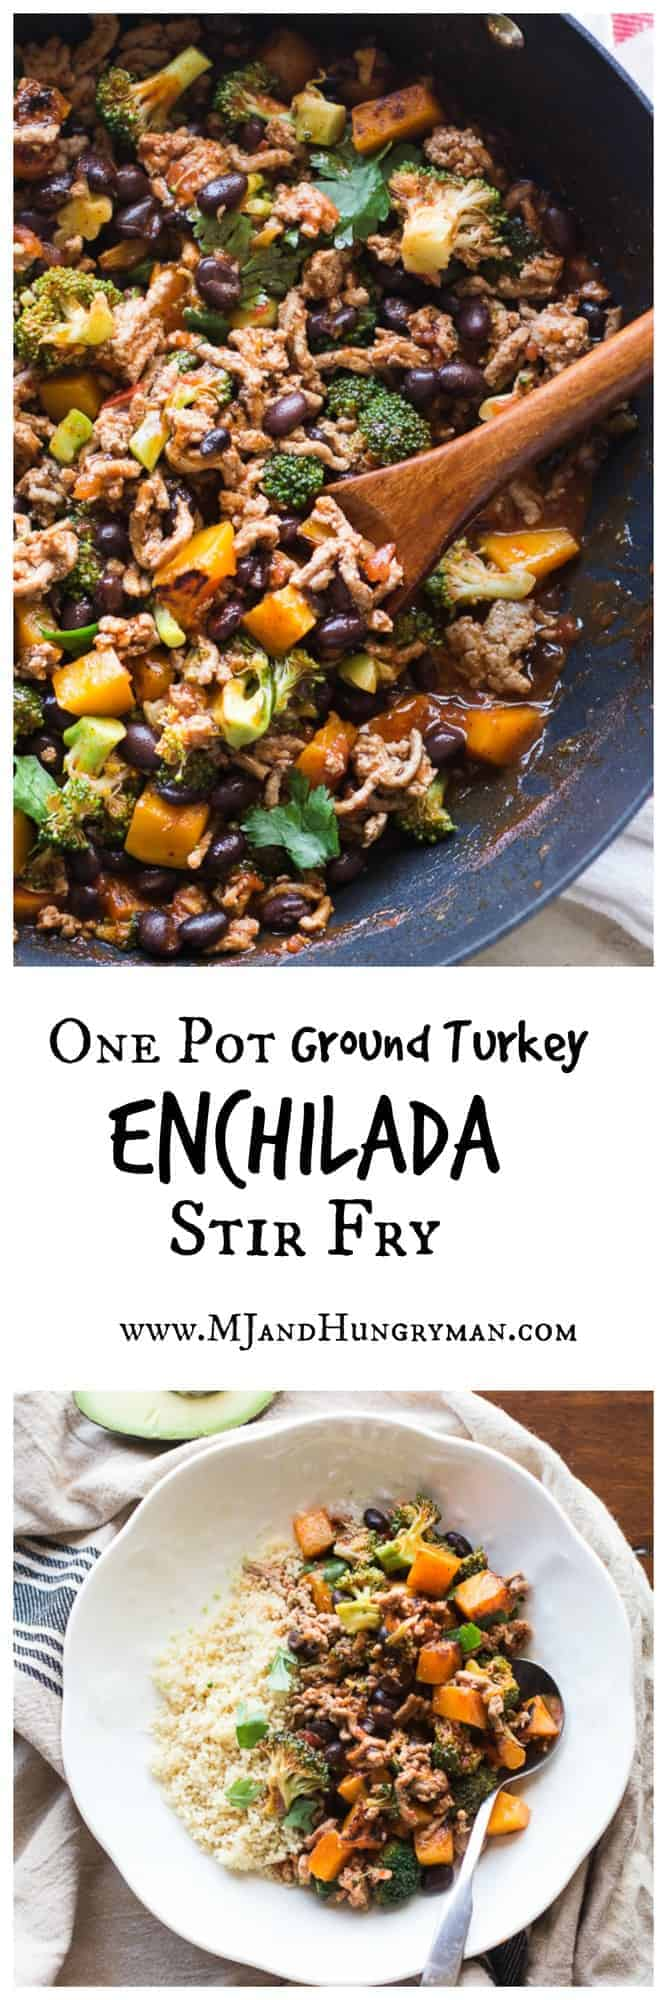 turkey enchilada stir fry